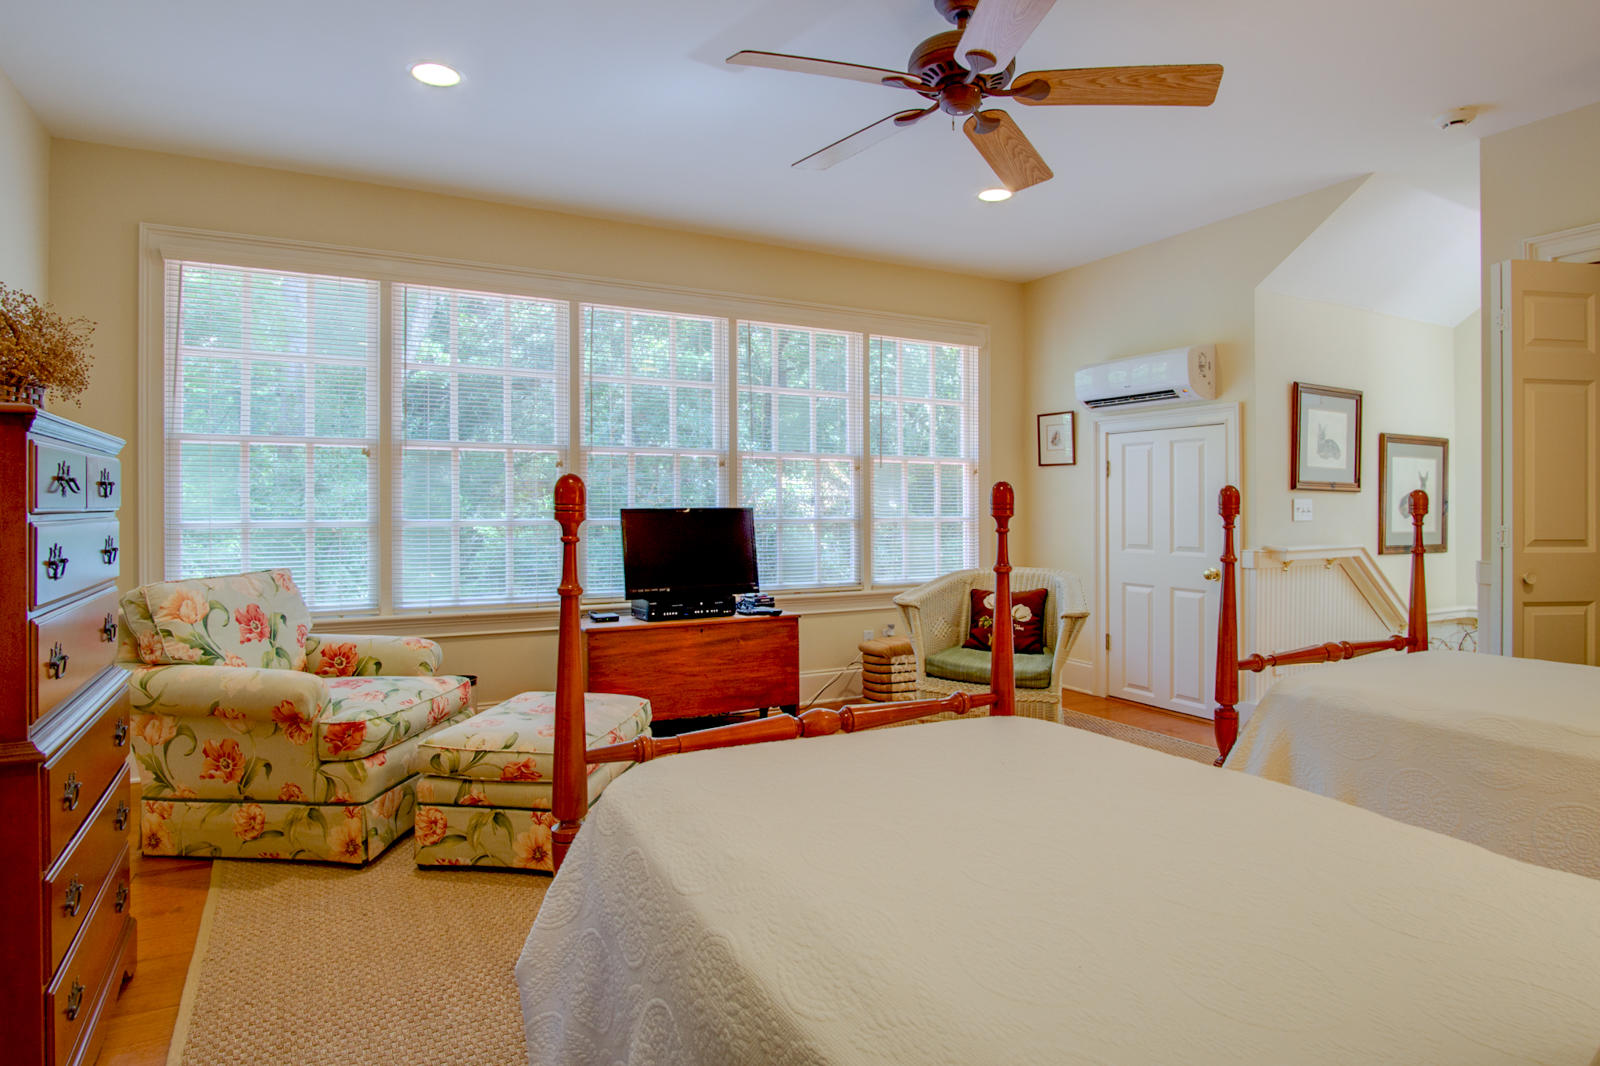 Bull Point Plantation Homes For Sale - 123 Bull Point, Seabrook, SC - 23